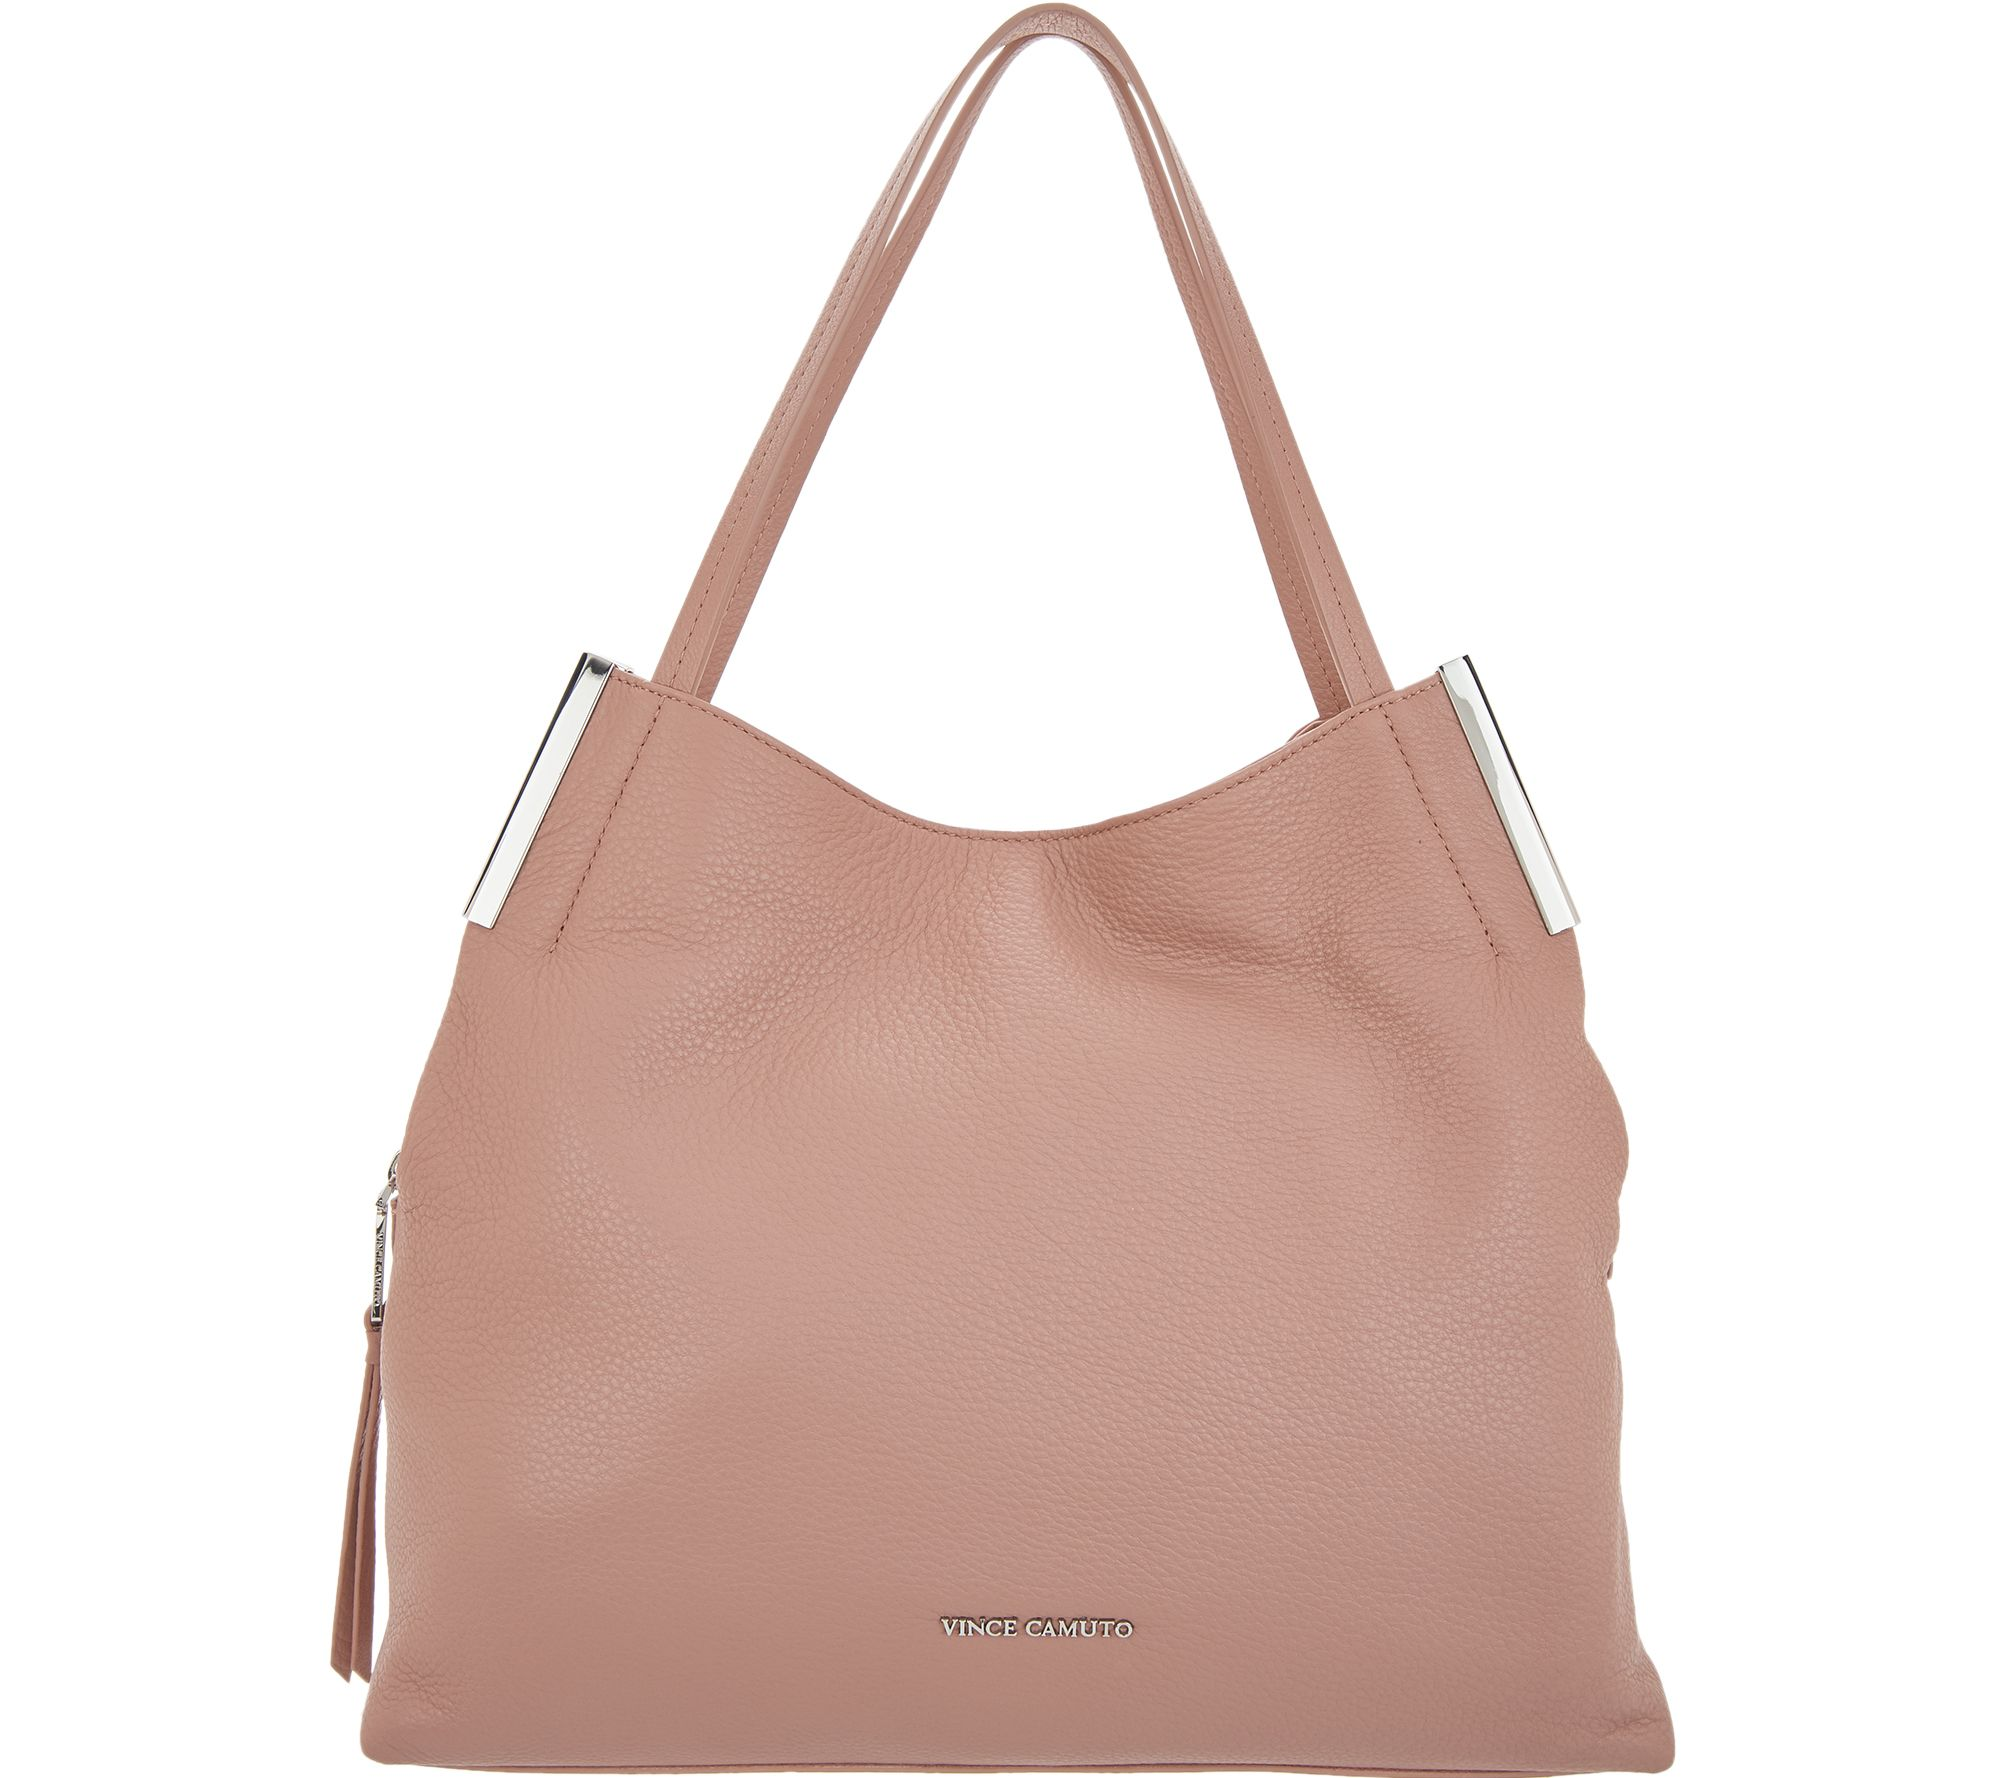 3ae22cde693 Vince Camuto Leather Tote - Tina - Page 1 — QVC.com